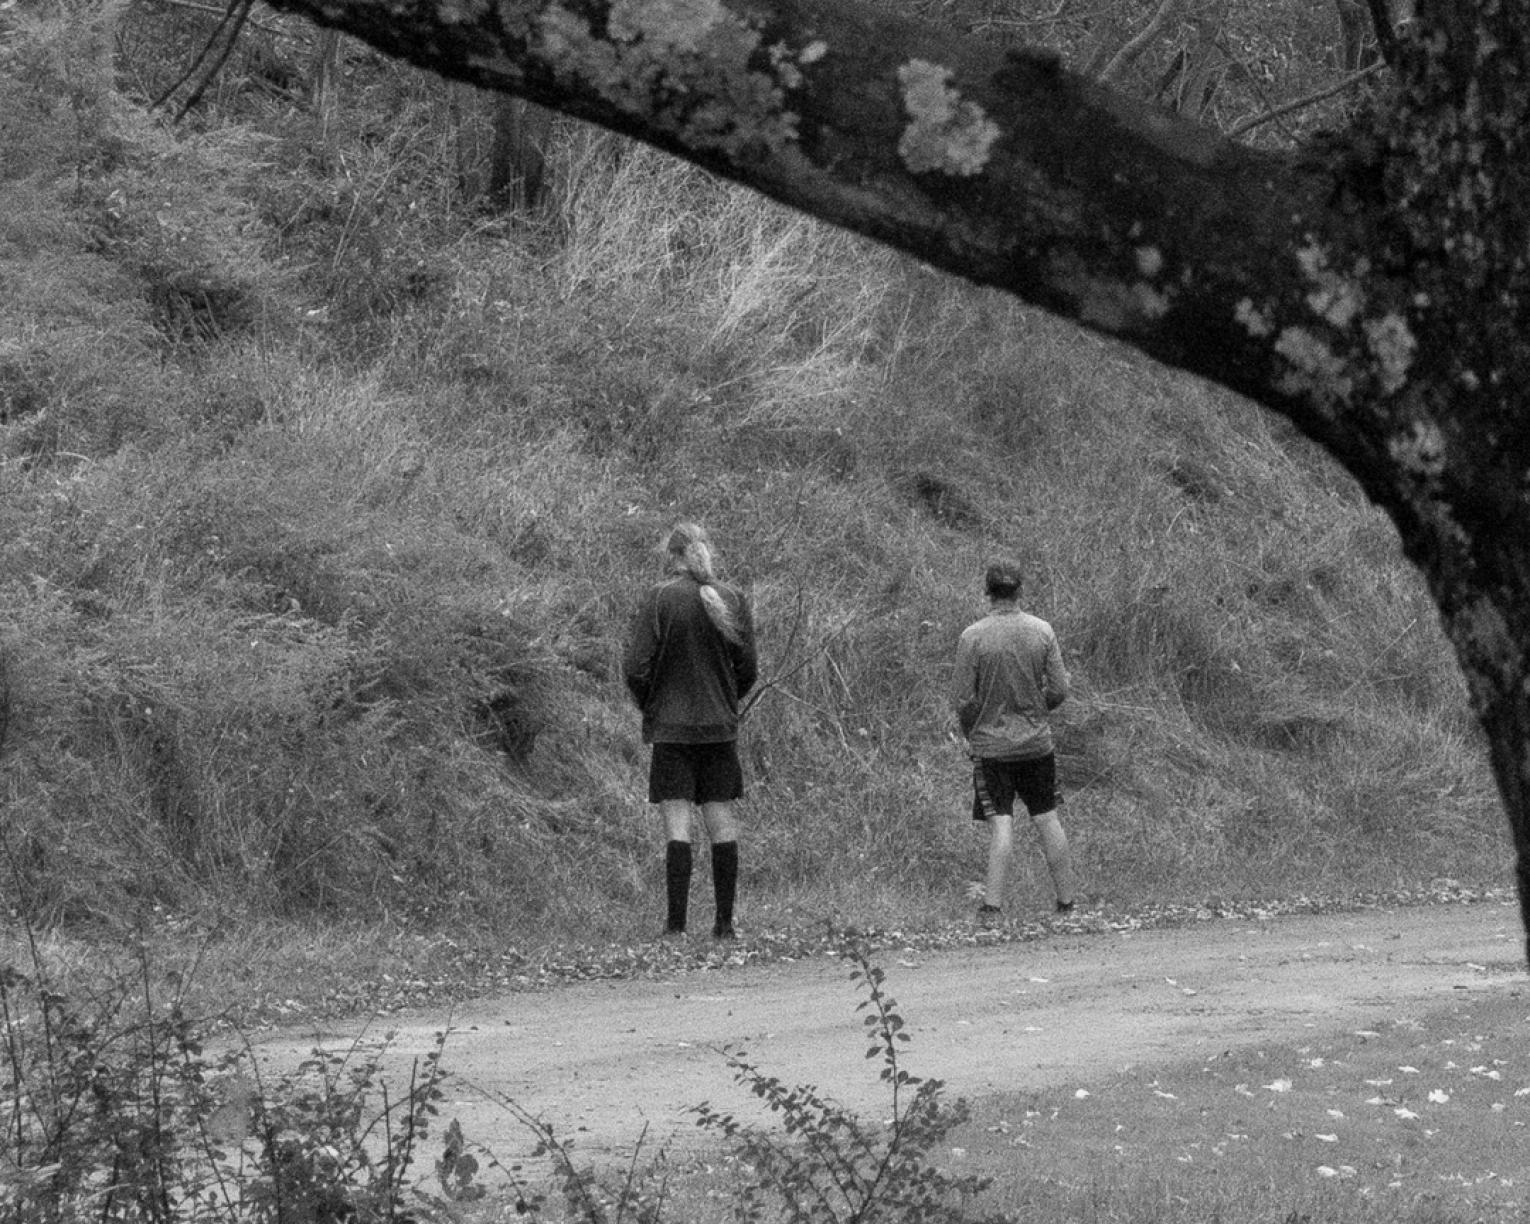 Black and white photo of two figures standing on the road looking into nature